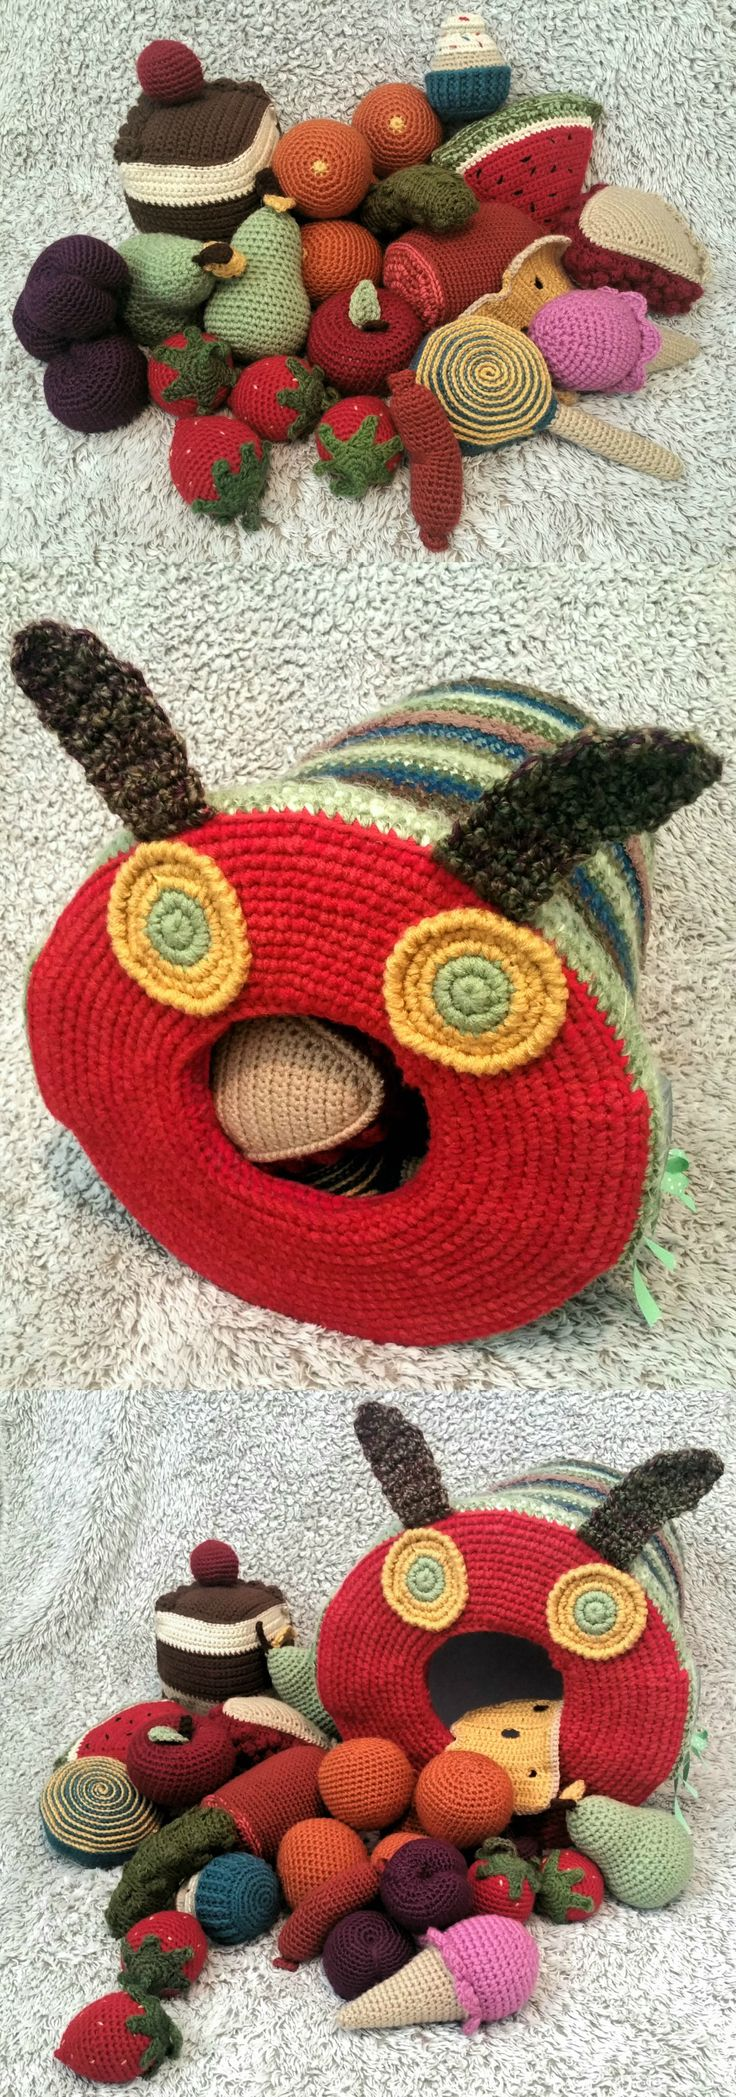 17 Best images about Hungry Caterpillar on Pinterest | The very ...